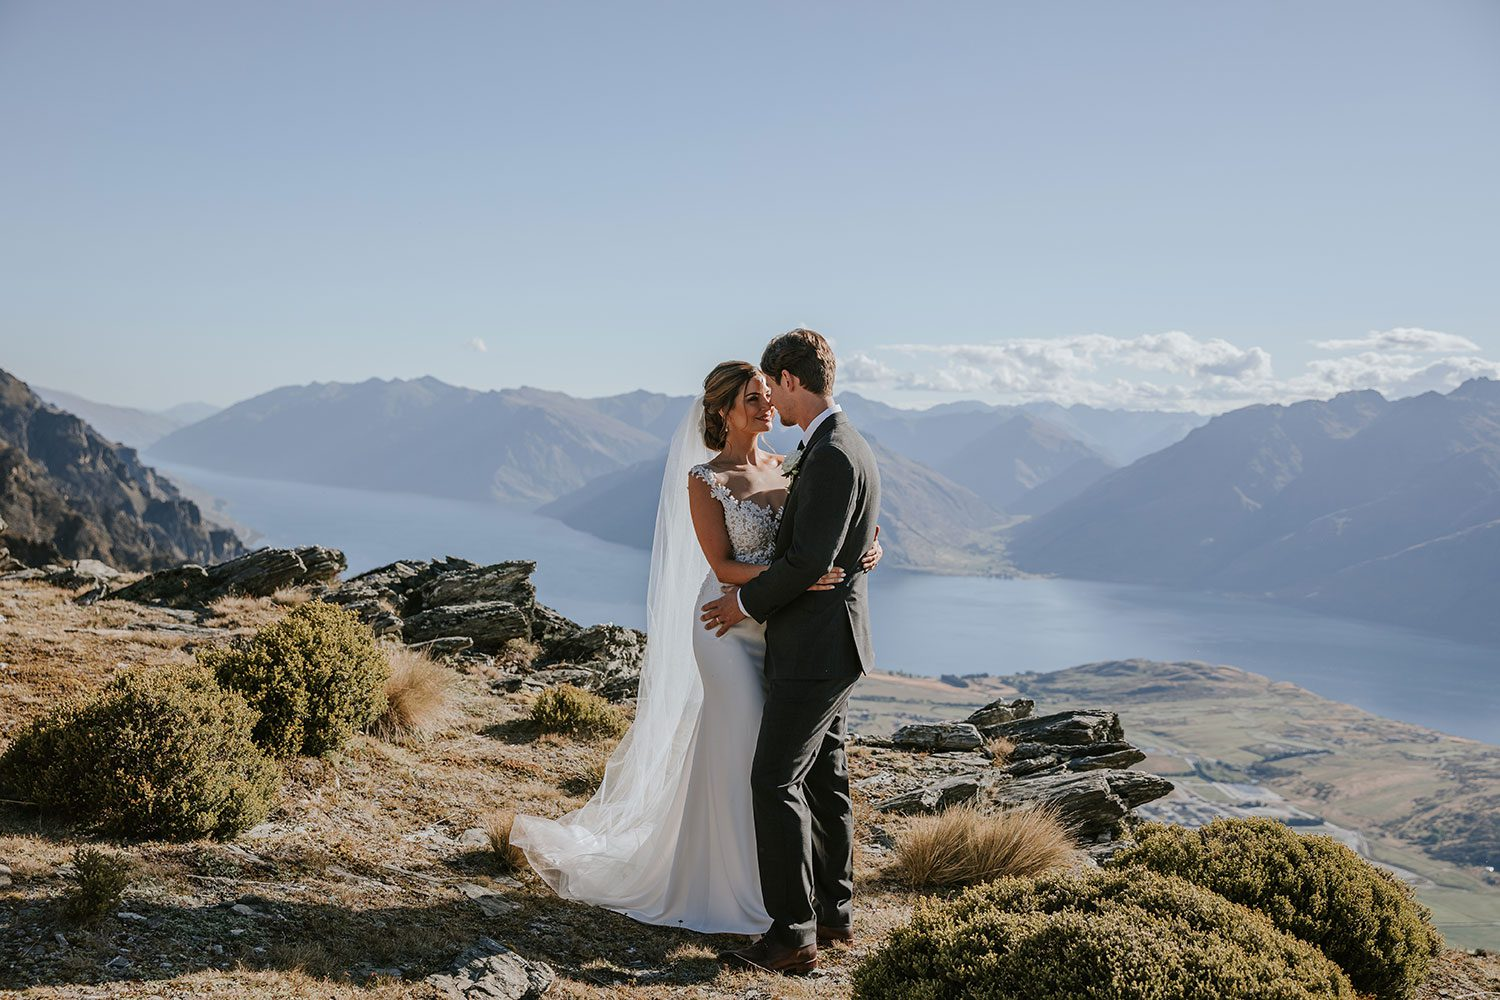 Bride wearing bespoke bridal gown with richly beaded lace over sheer tulle bodice and low back from Auckland wedding dress designer Vinka designs - embrace with groom on hill